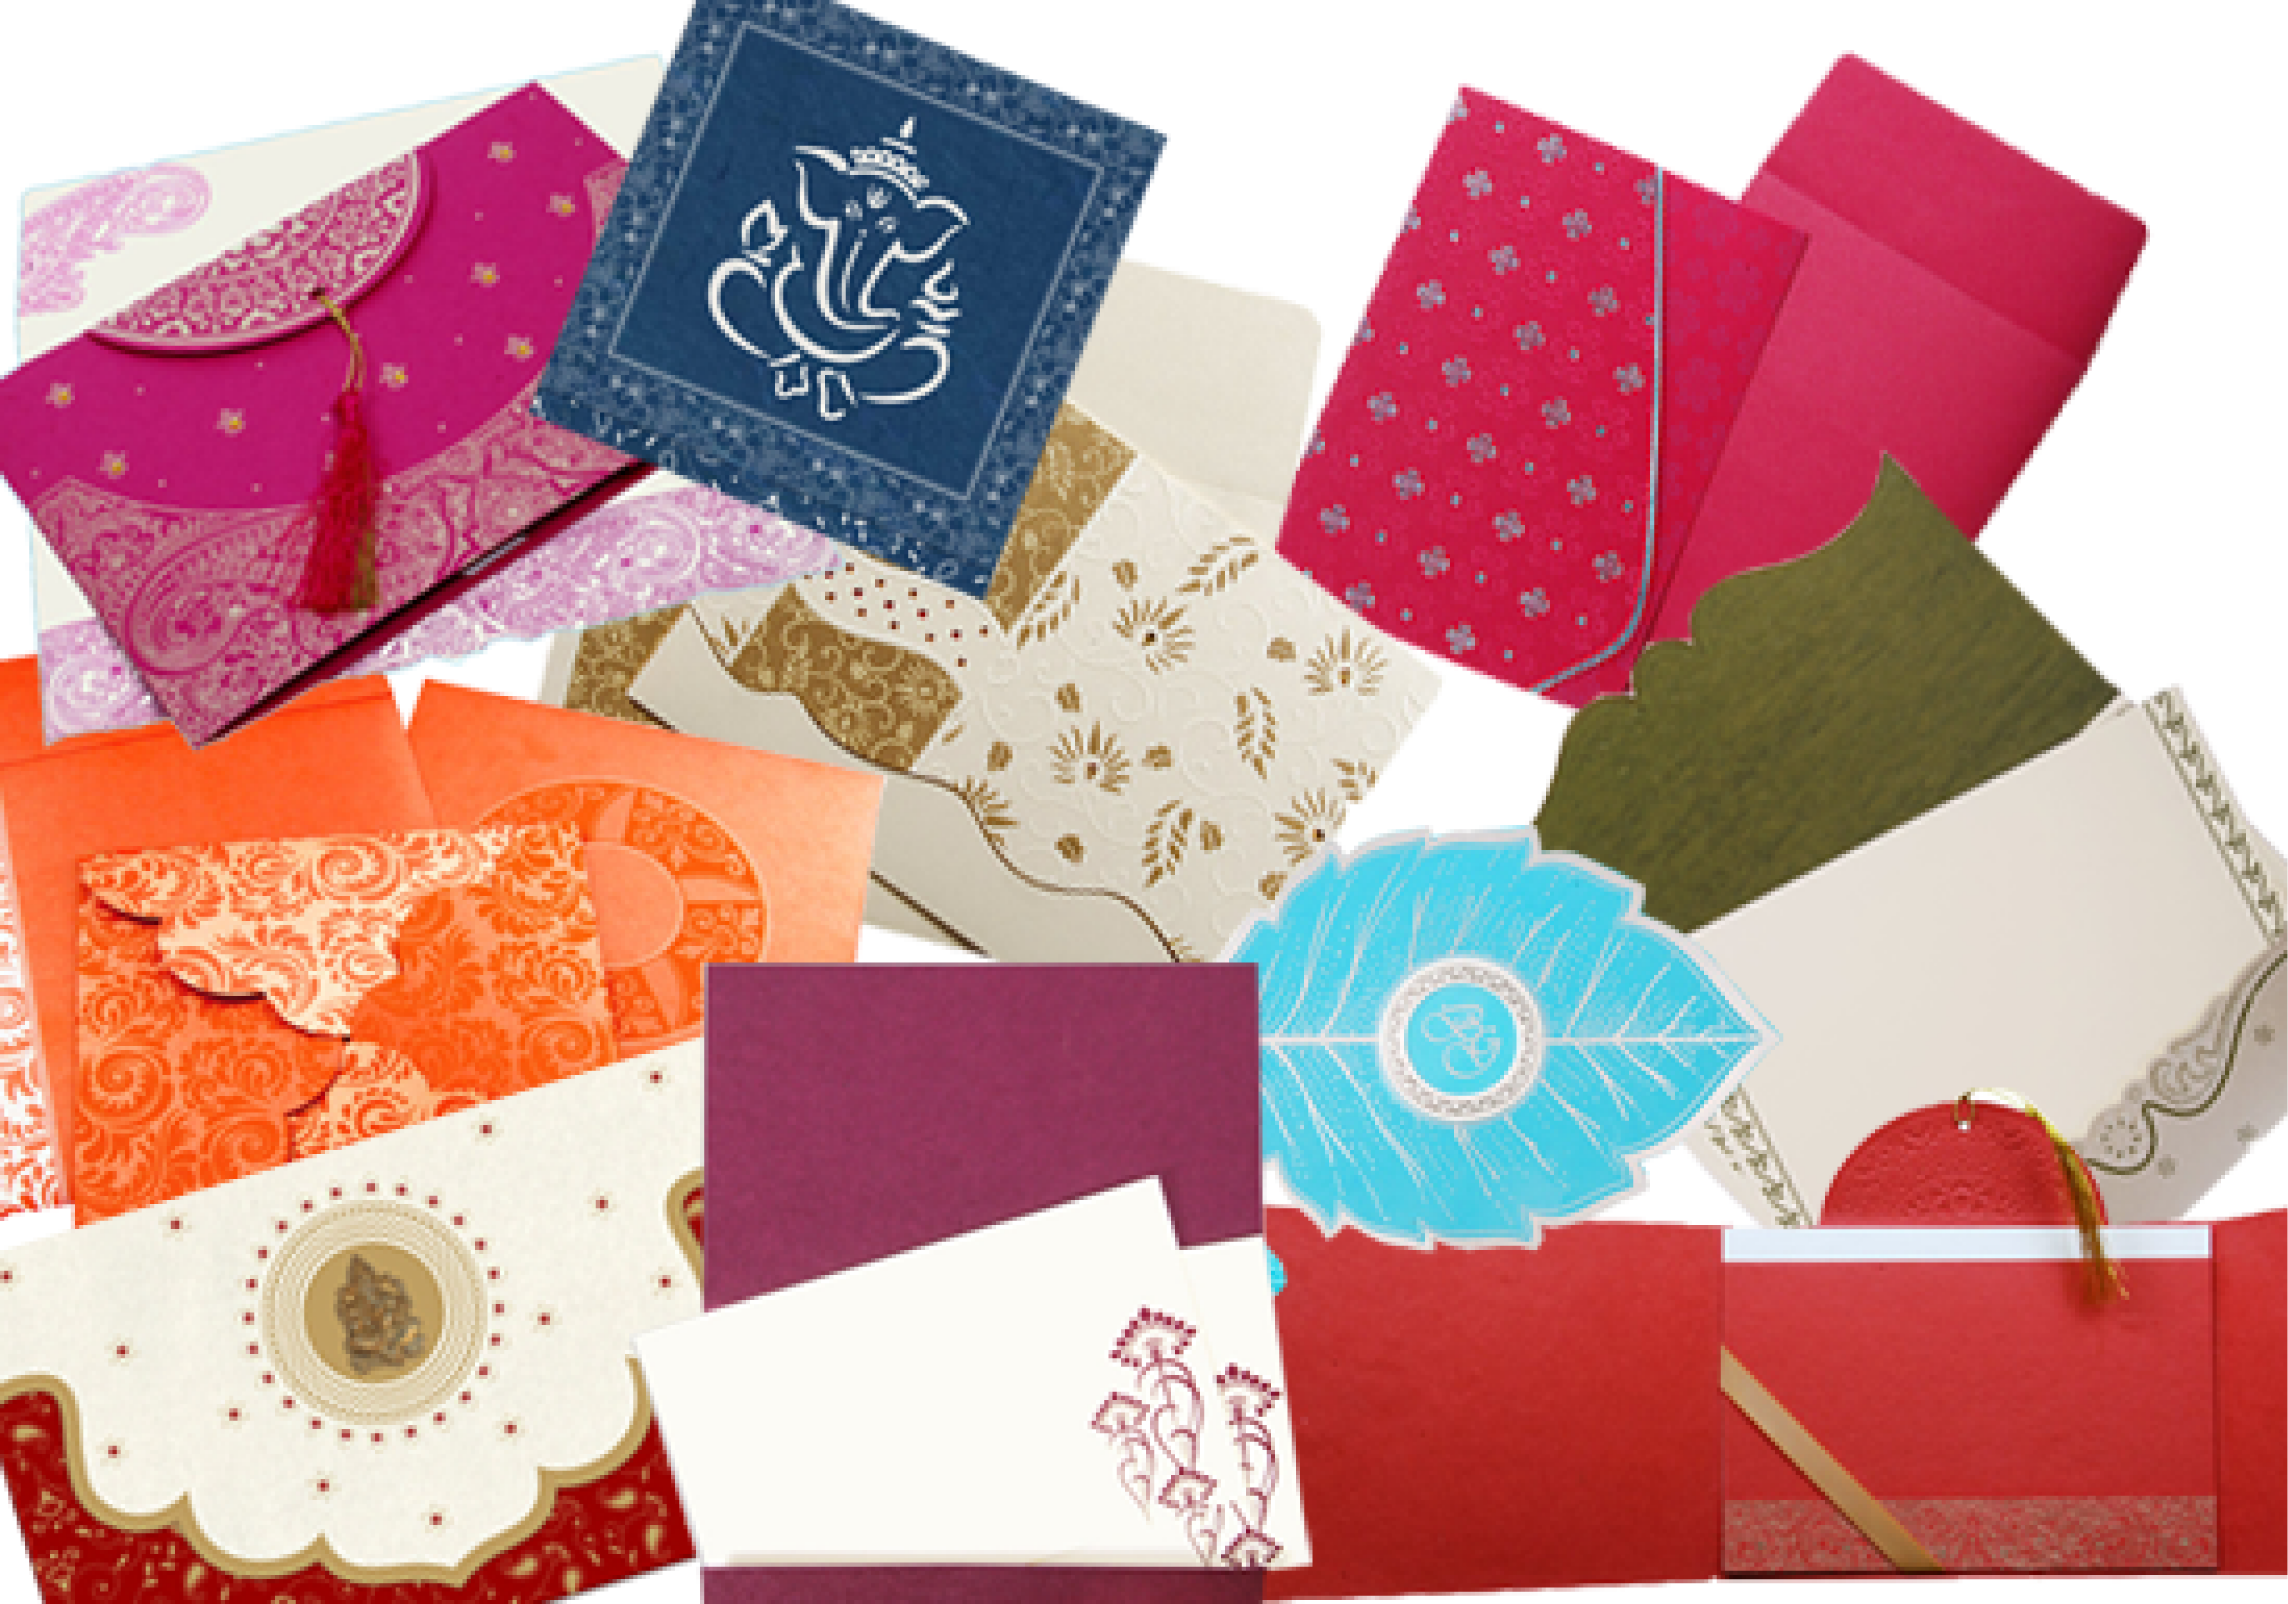 Indian Wedding Card Png Free Indian Wedding Card Png Transparent Images 132466 Pngio